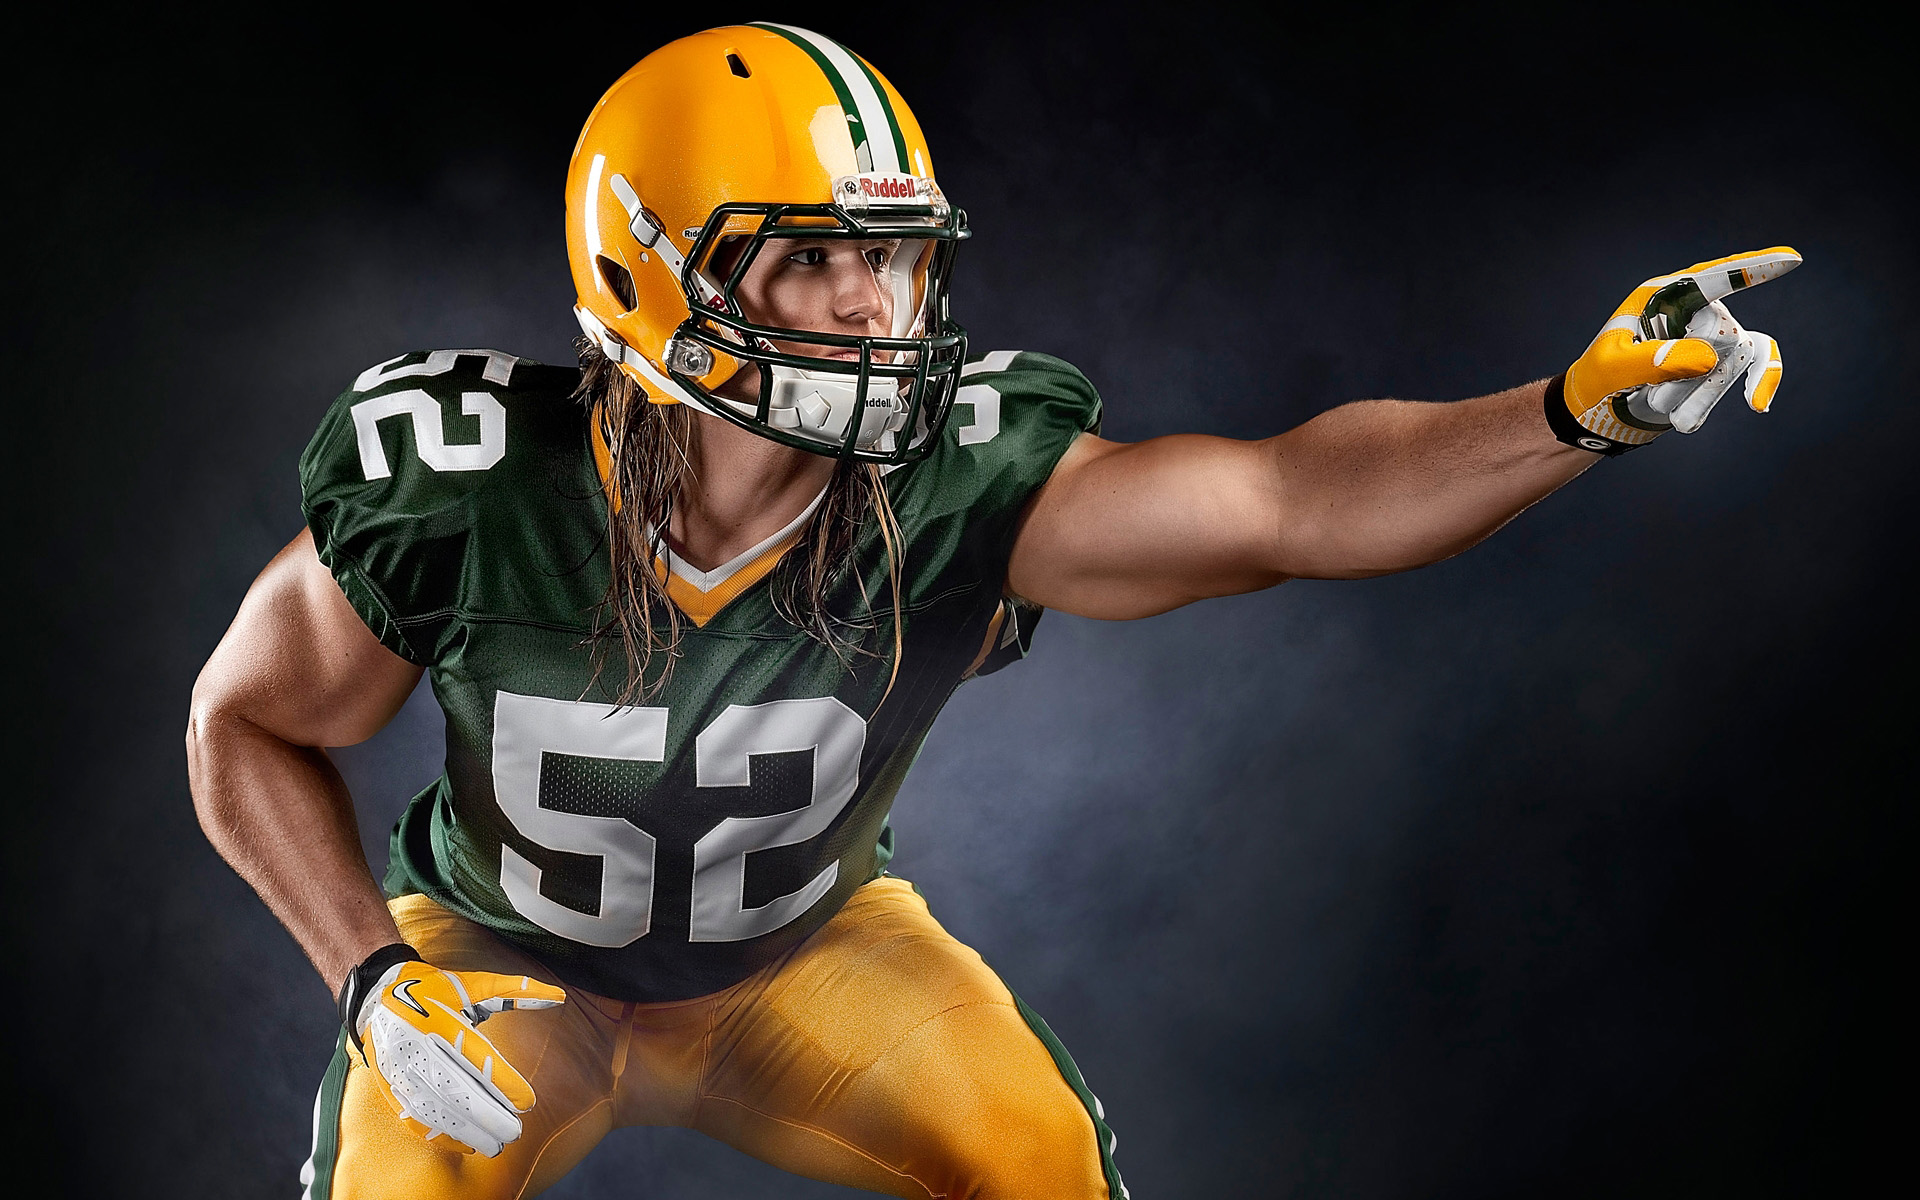 Clay Matthews by athlete photographer Blair Bunting